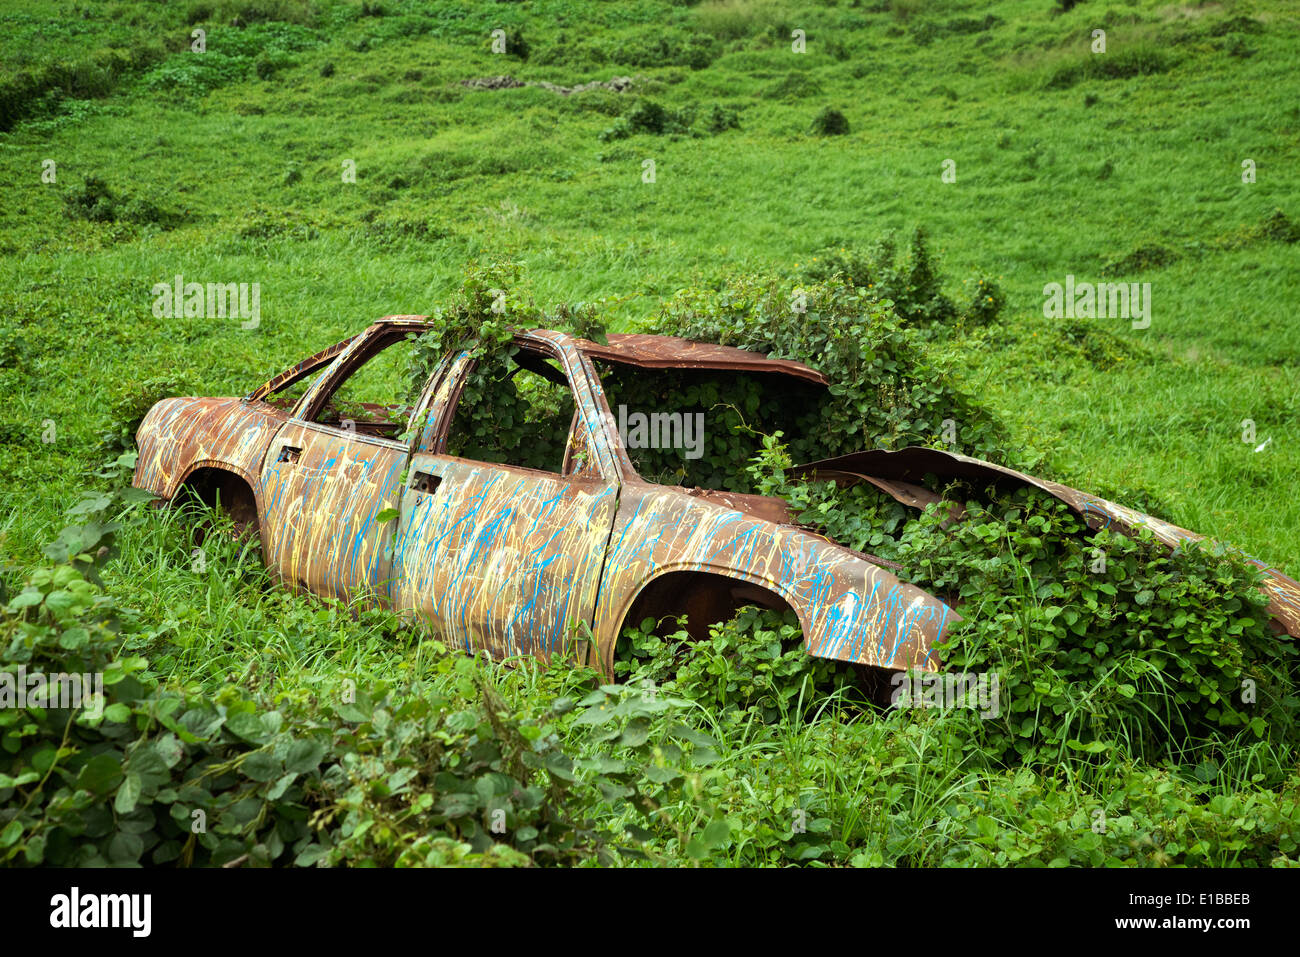 Old wrecked and painted car. Upland, Maui, Hawaii. - Stock Image